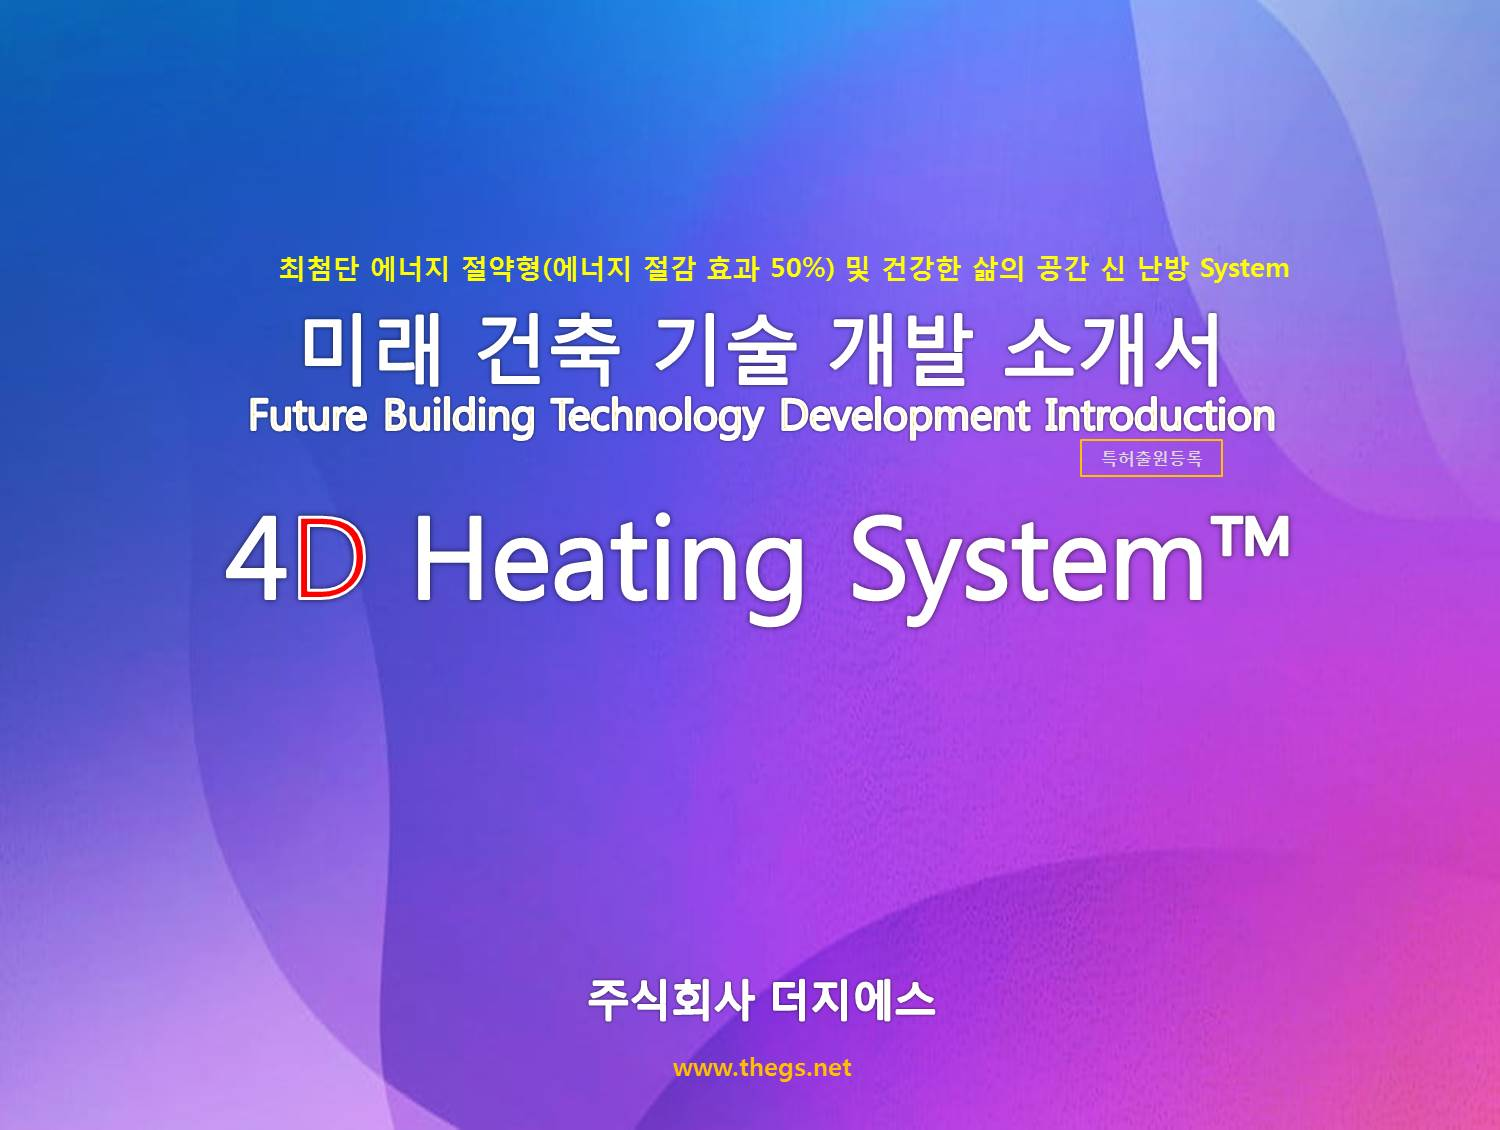 4D Heating System